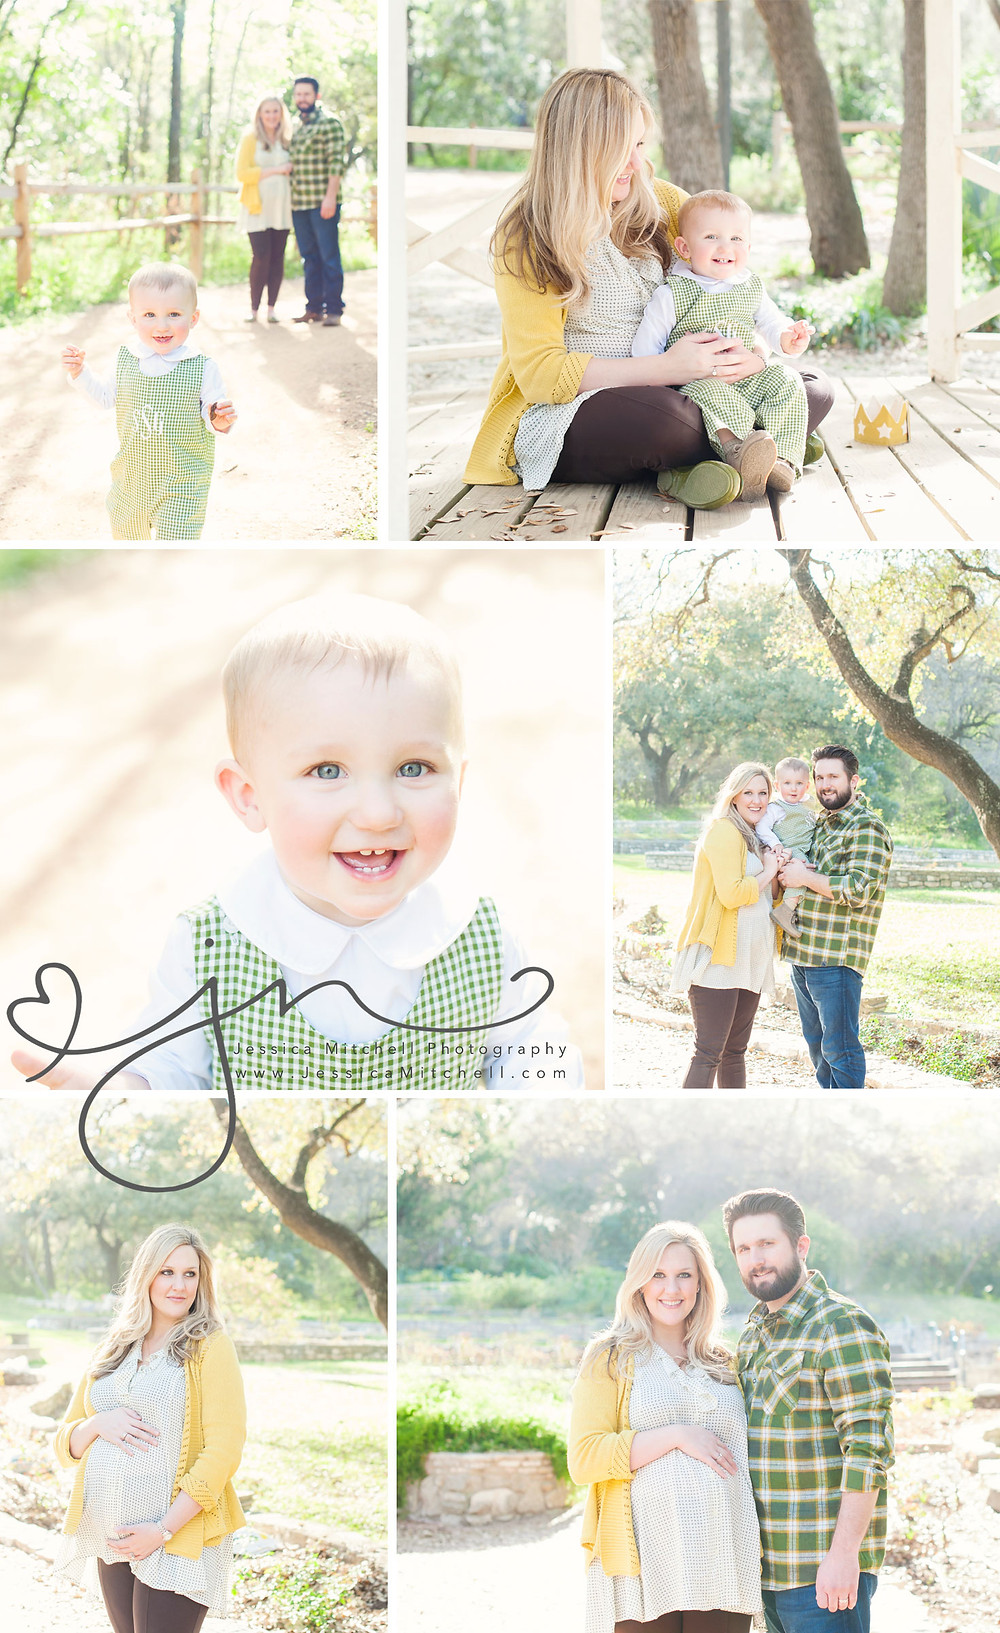 Modern Family Maternity Photography Austin Tx - Jessica Mitchell Photography